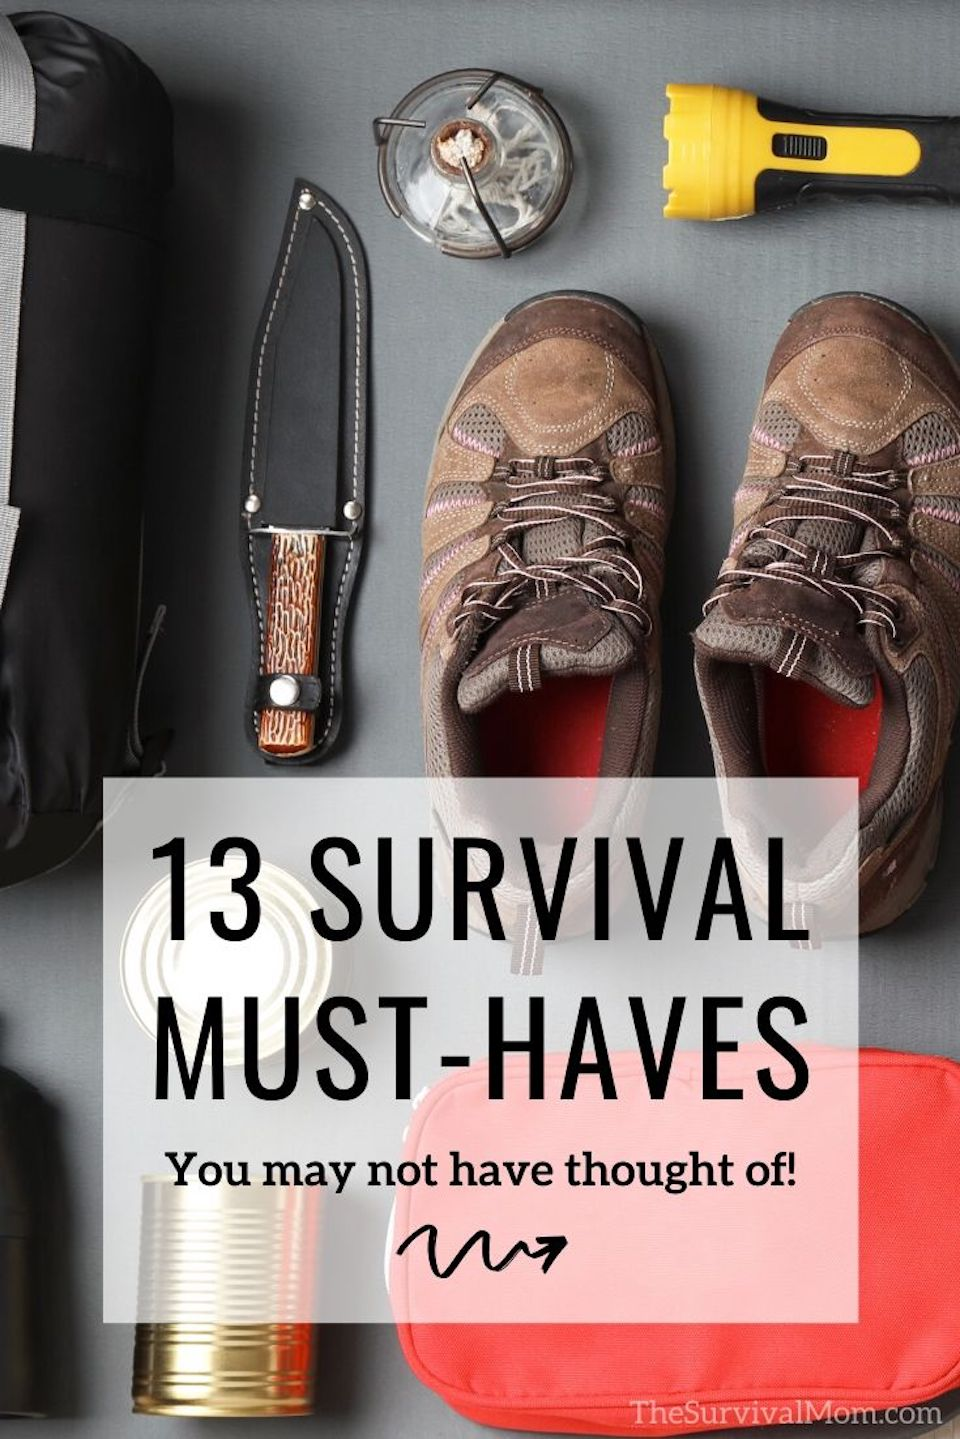 13 survival must haves for your emergency kit